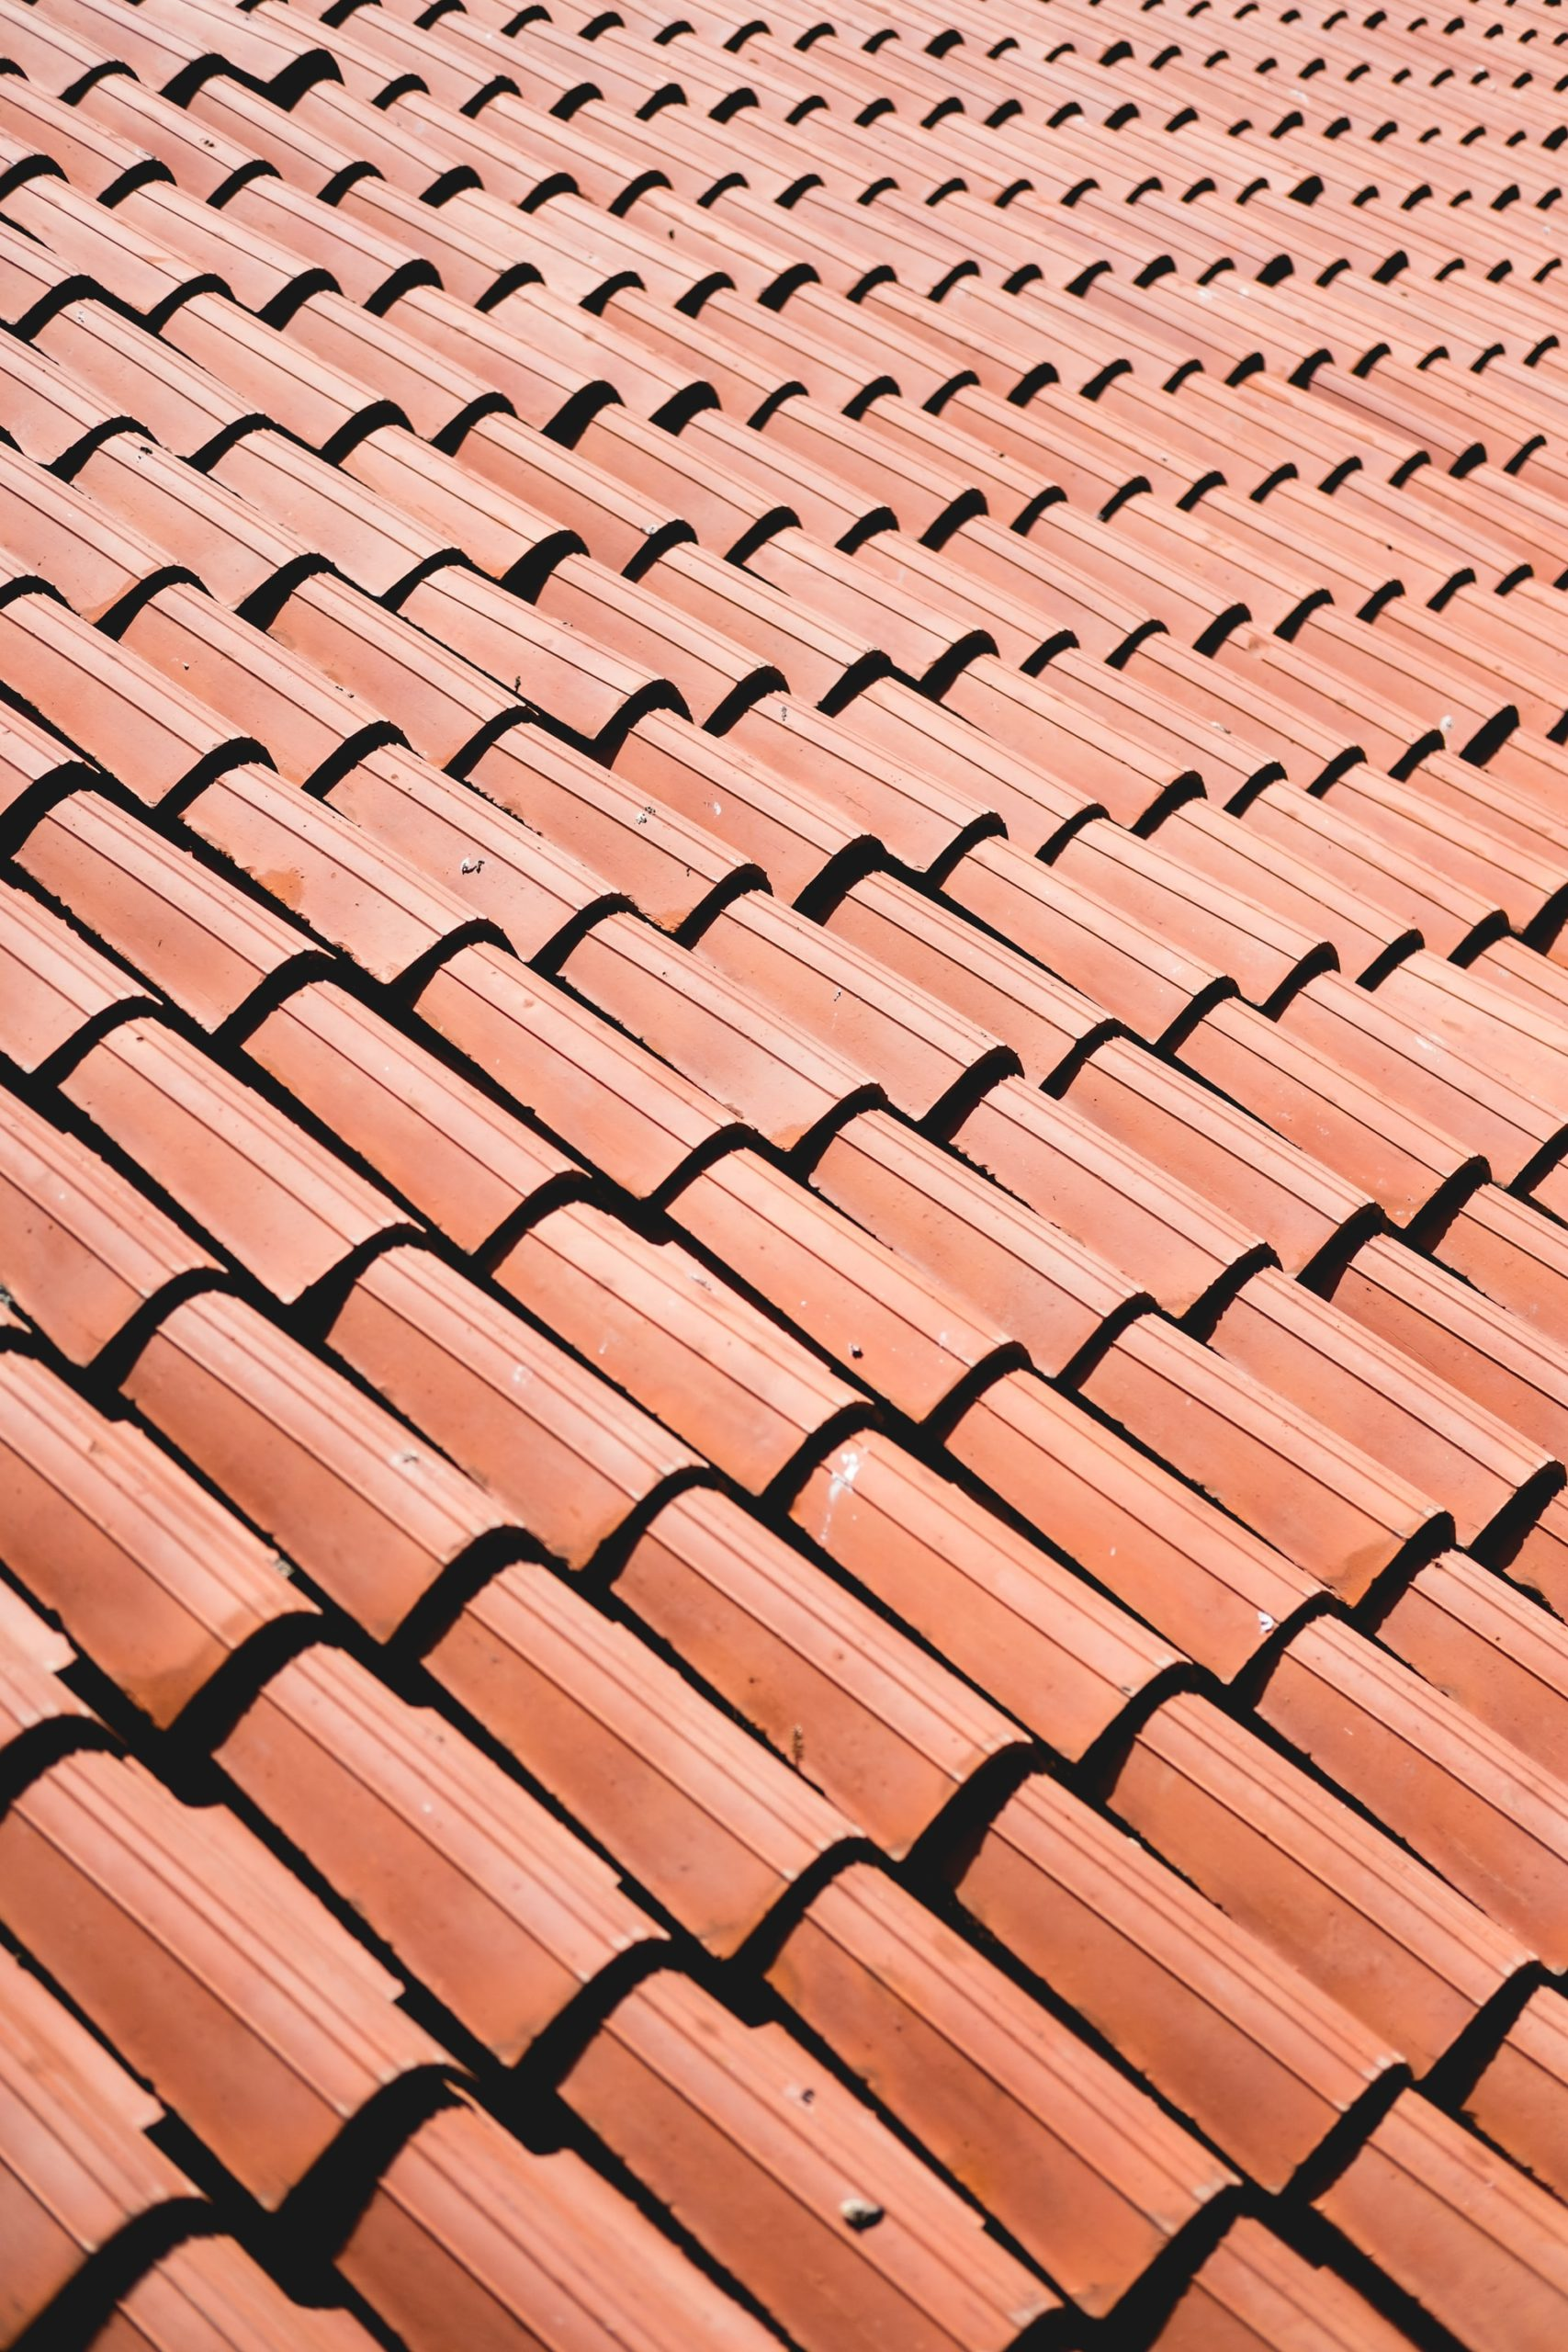 How Expand Roofing Business Article Image